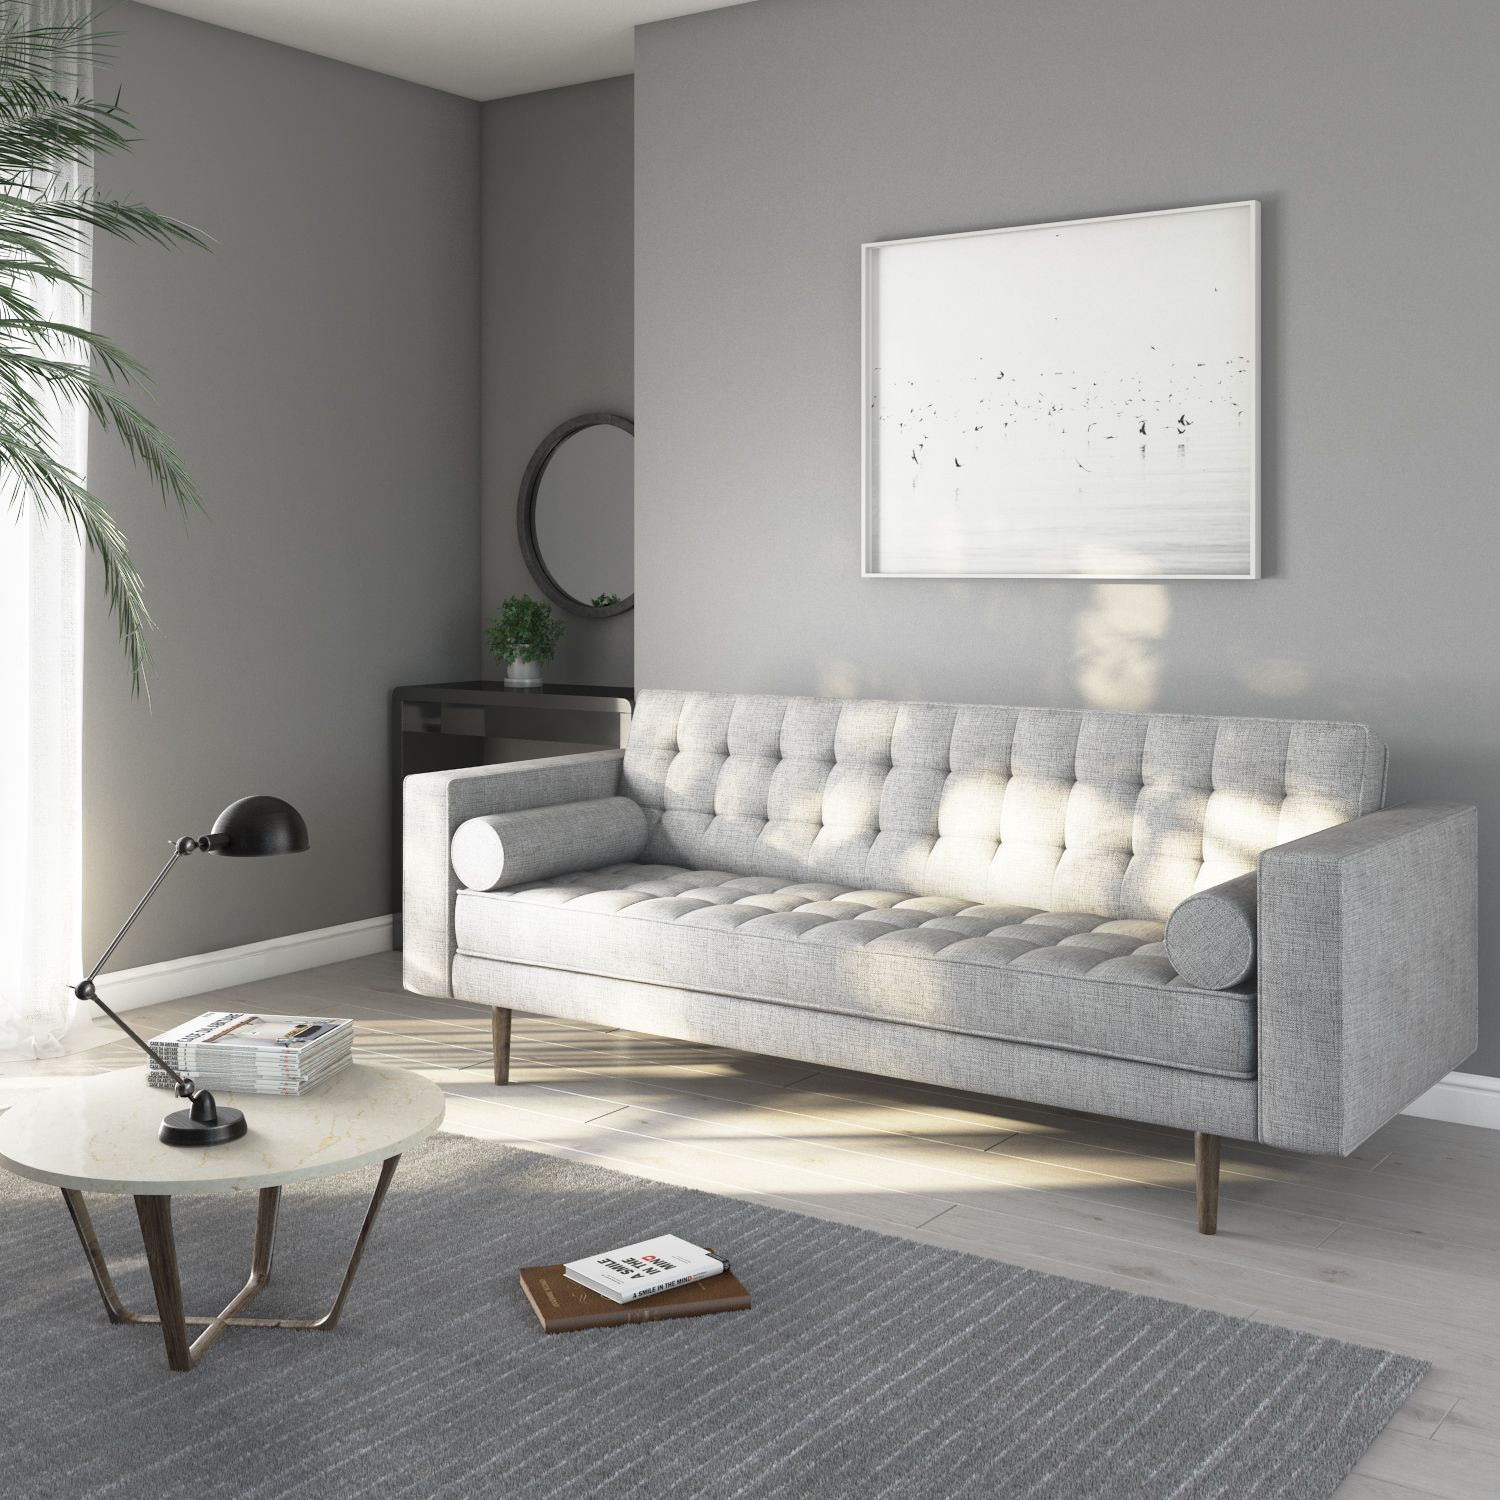 New In Elba Taupe 3 Seater Sofa Sof022 Grey Sofa Living Room Cushions On Sofa Light Gray Sofas #taupe #couch #living #room